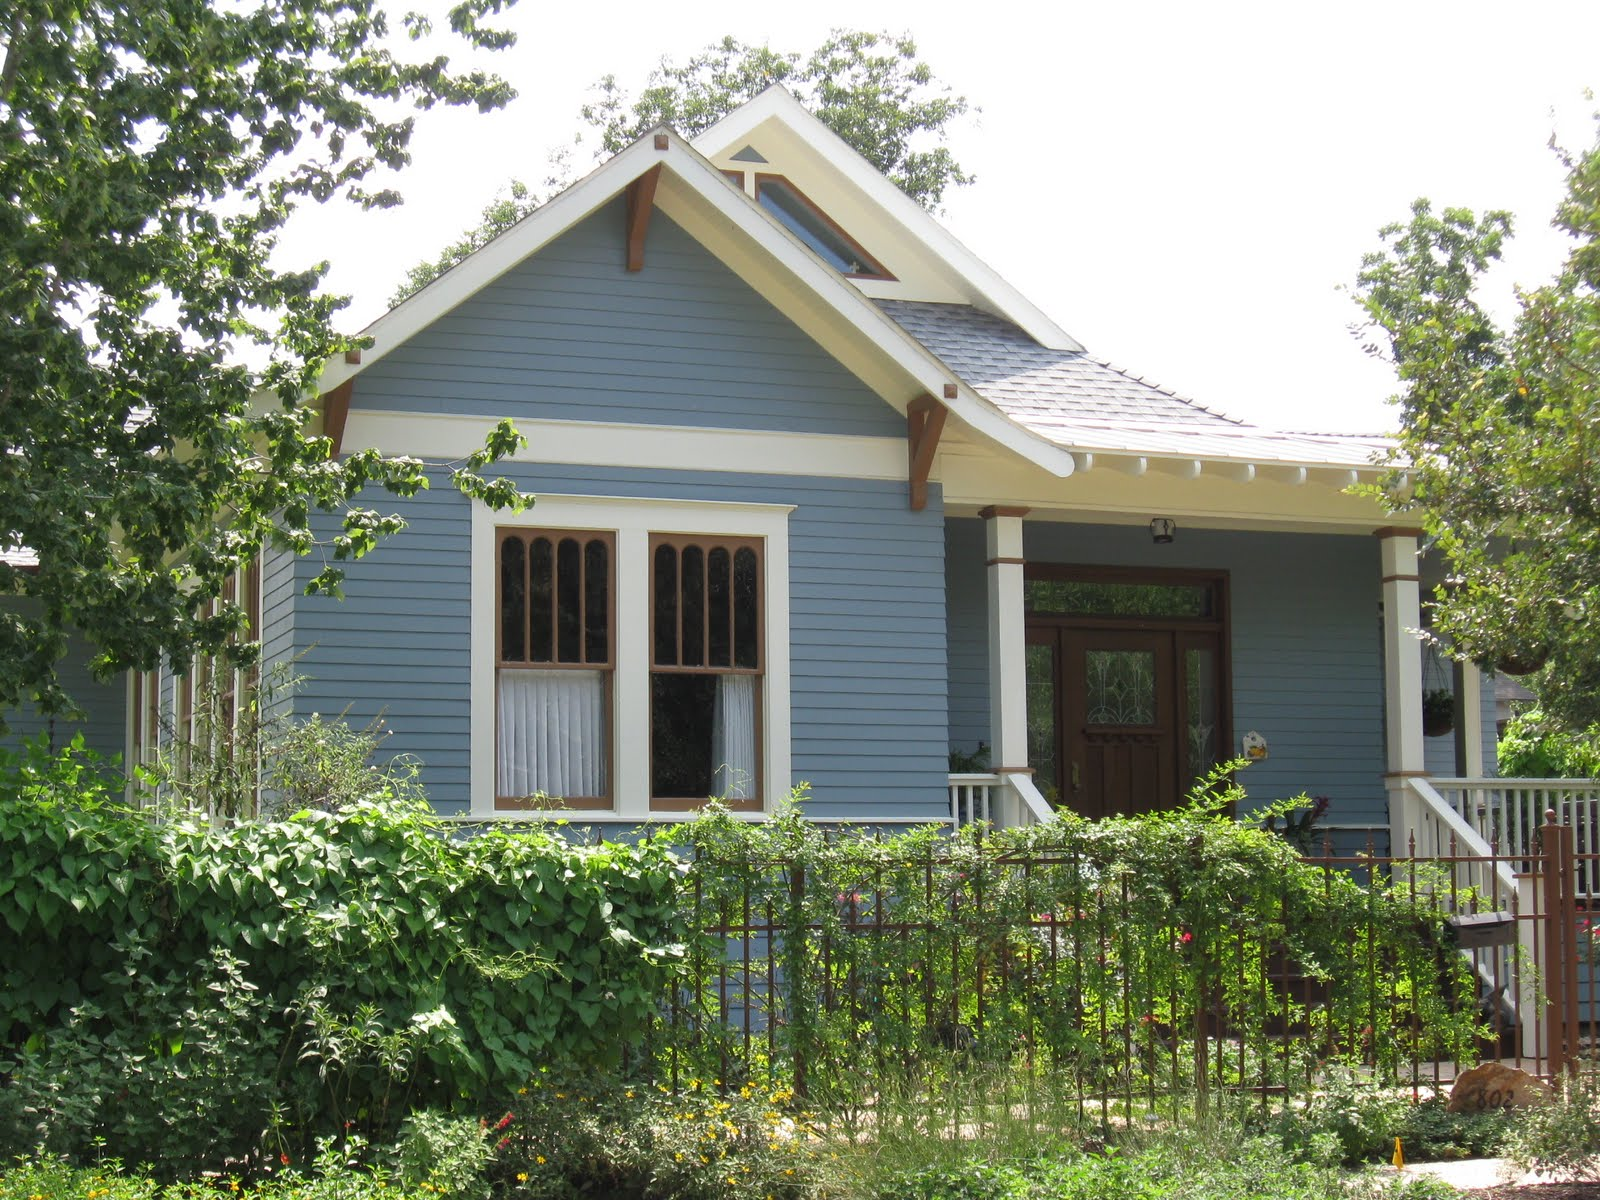 The OtHeR HoUsToN: 2007 COTTAGE GARDEN IN WOODLAND HEIGHTS